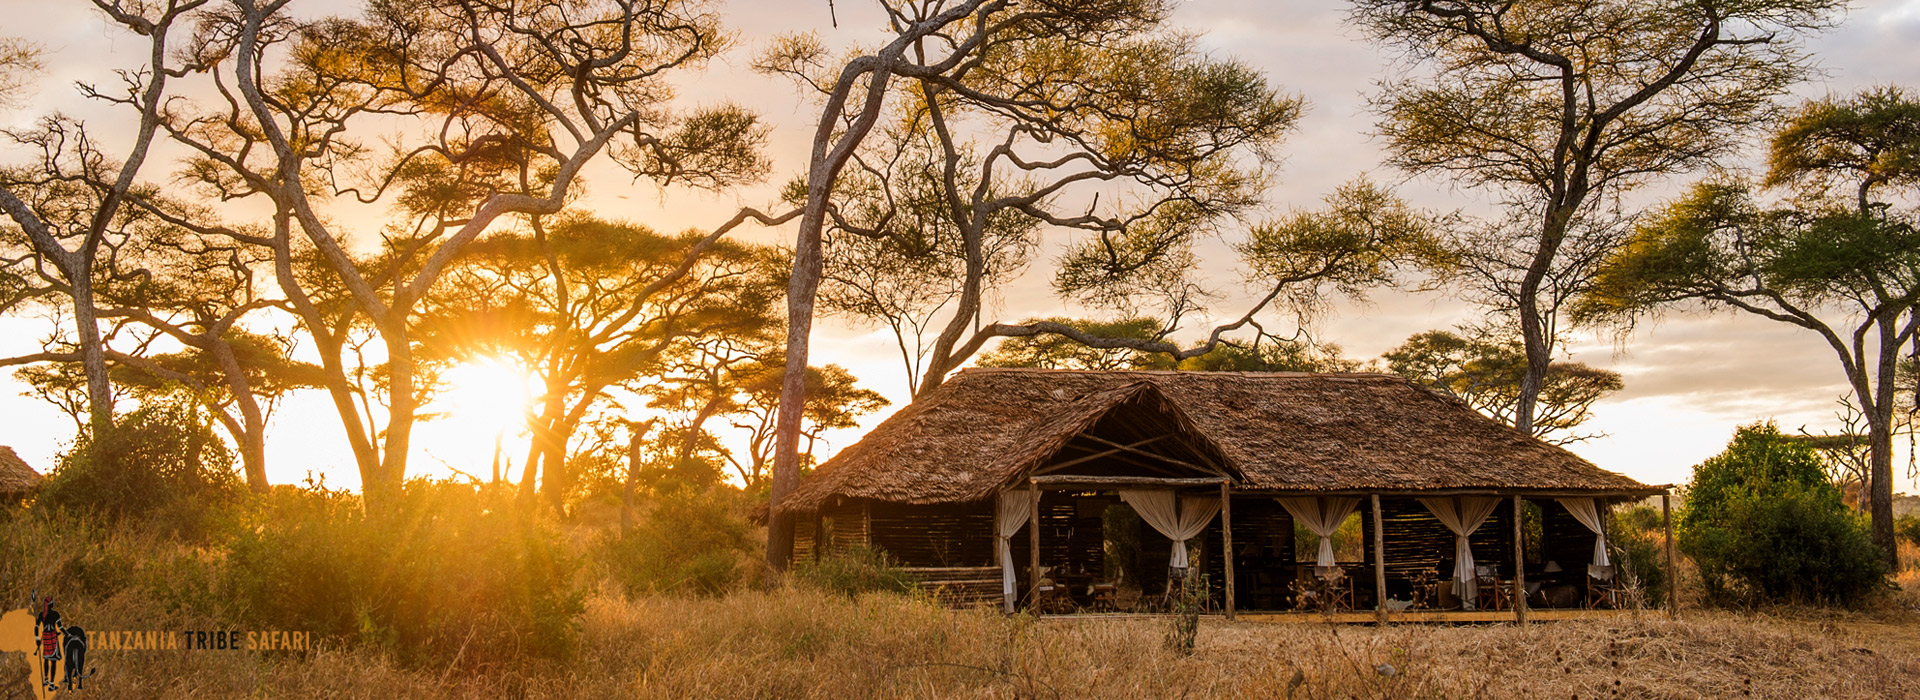 7 Days Tanzania Wildlife Camping Safari Tarangire, Lake Manyara, Serengeti, Ngorongoro Crater